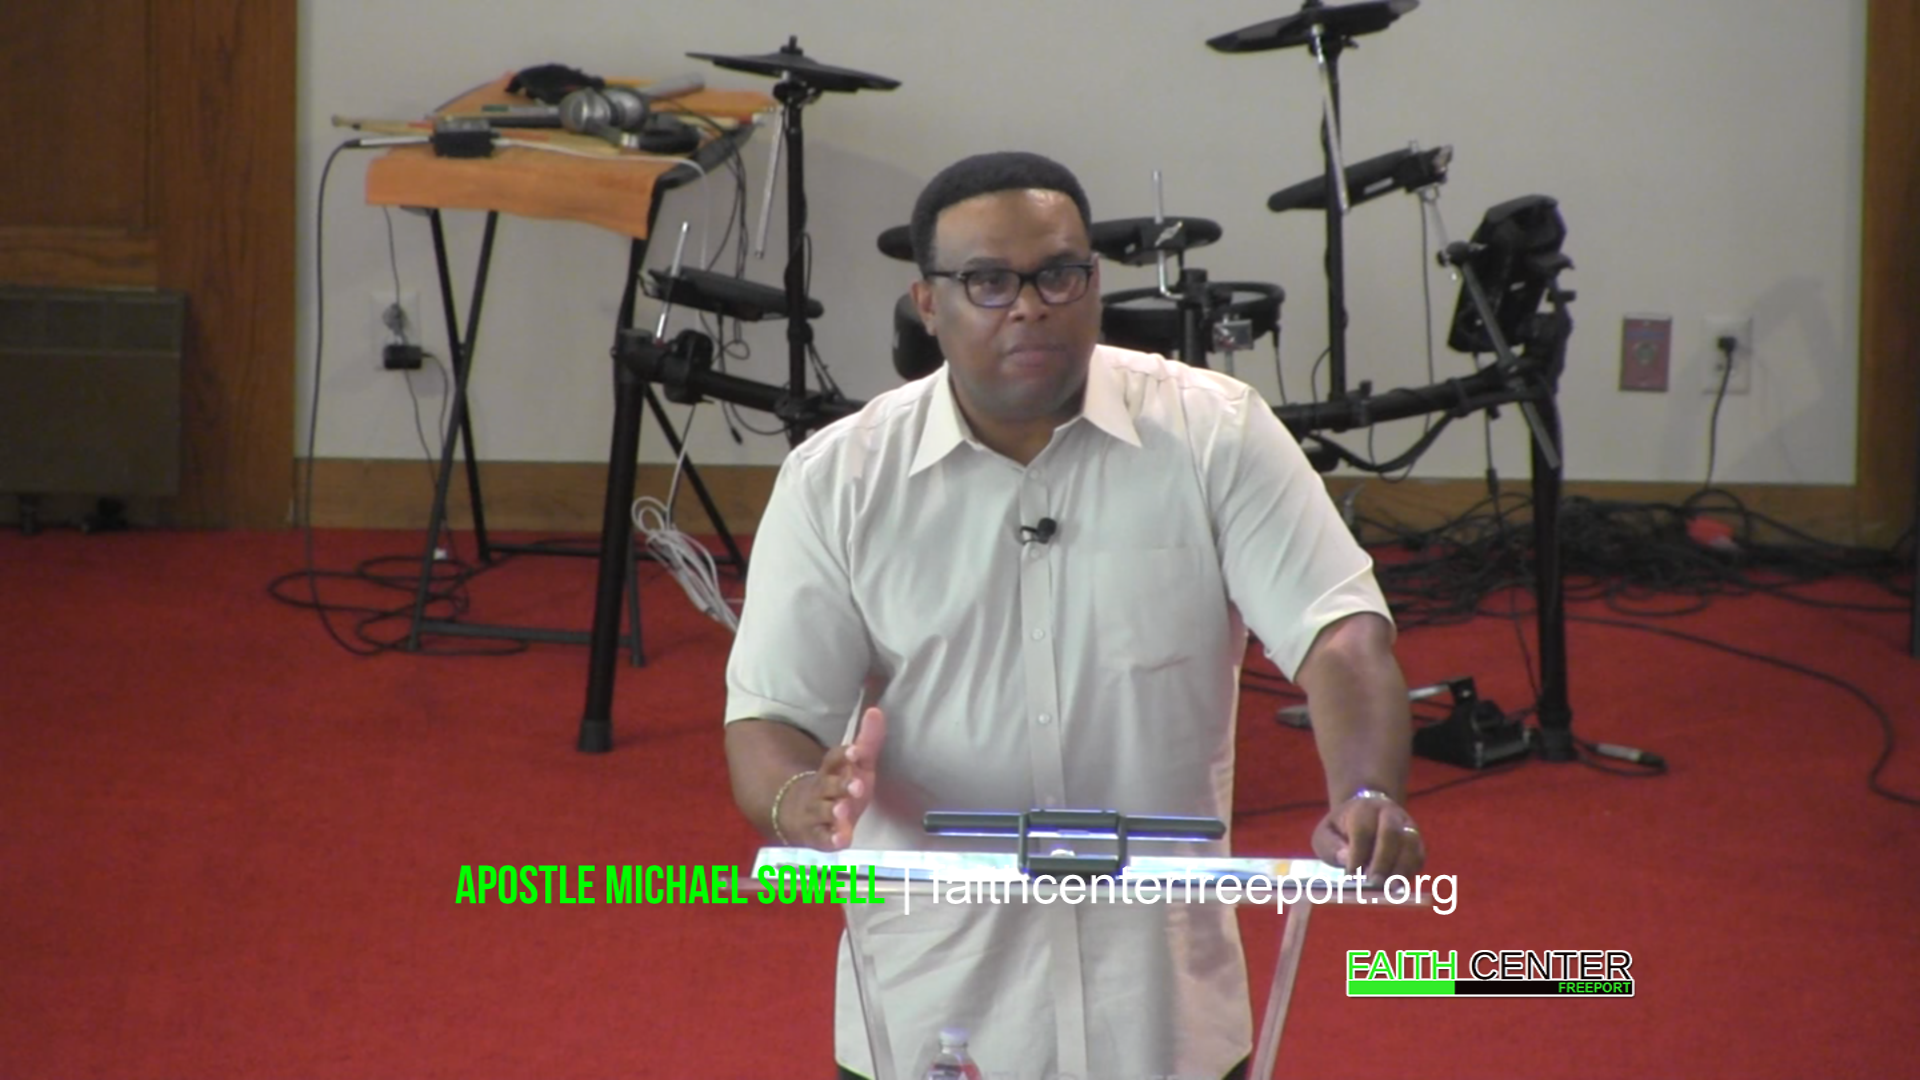 Develop Faith – Apostle Michael Sowell